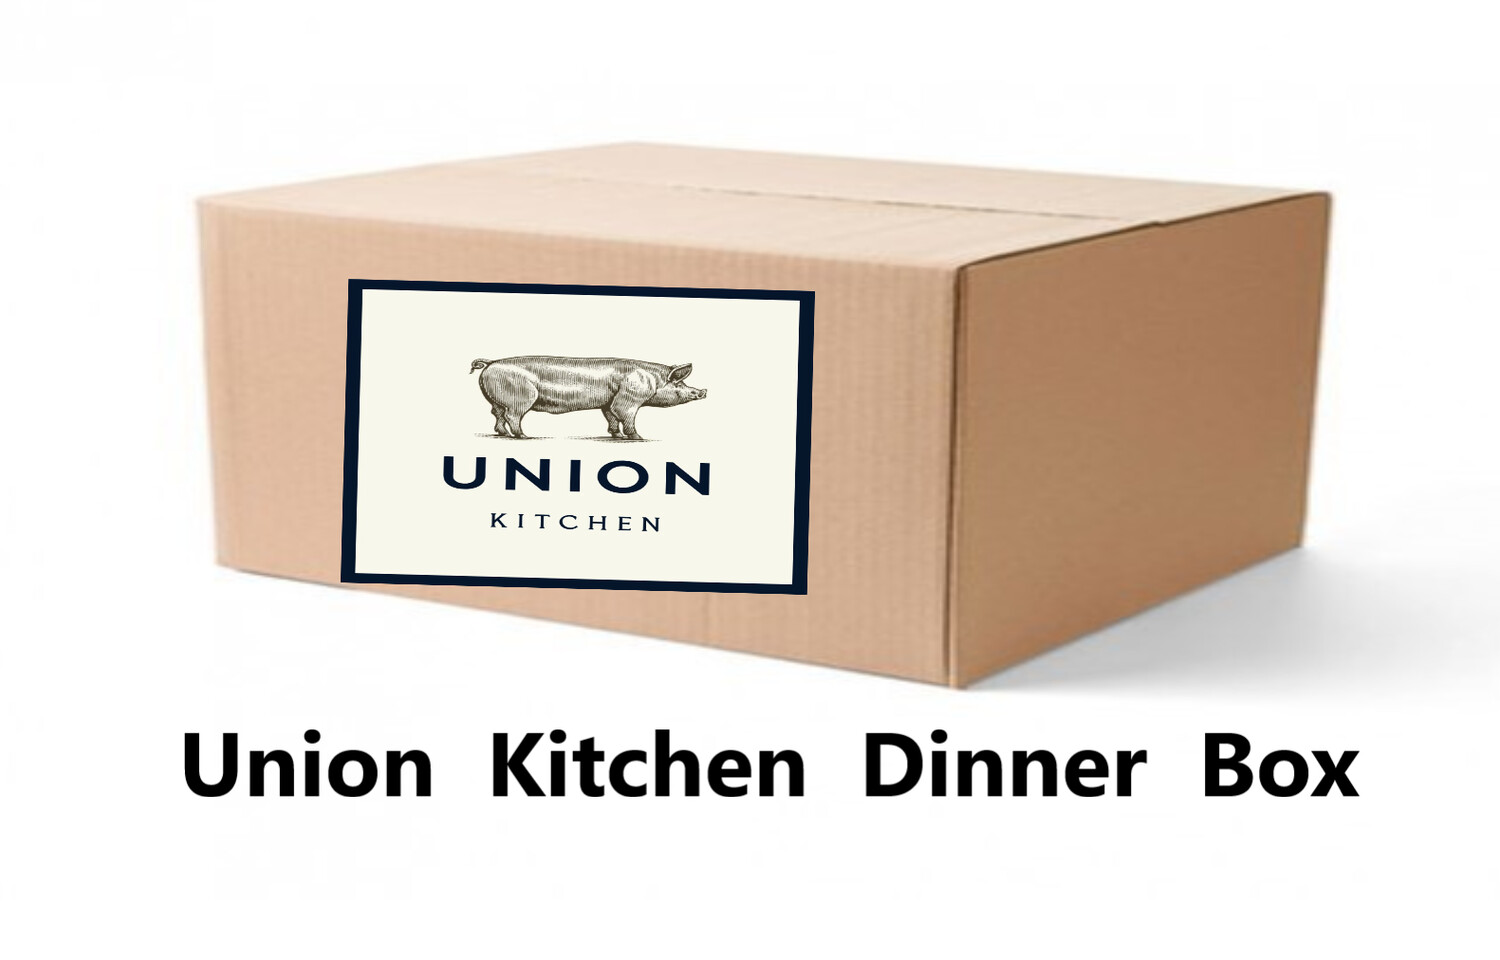 DINNER BOX - THE UNION KITCHEN BOX - We teamed up with our friends at Union Kitchen in West Hartford this week.